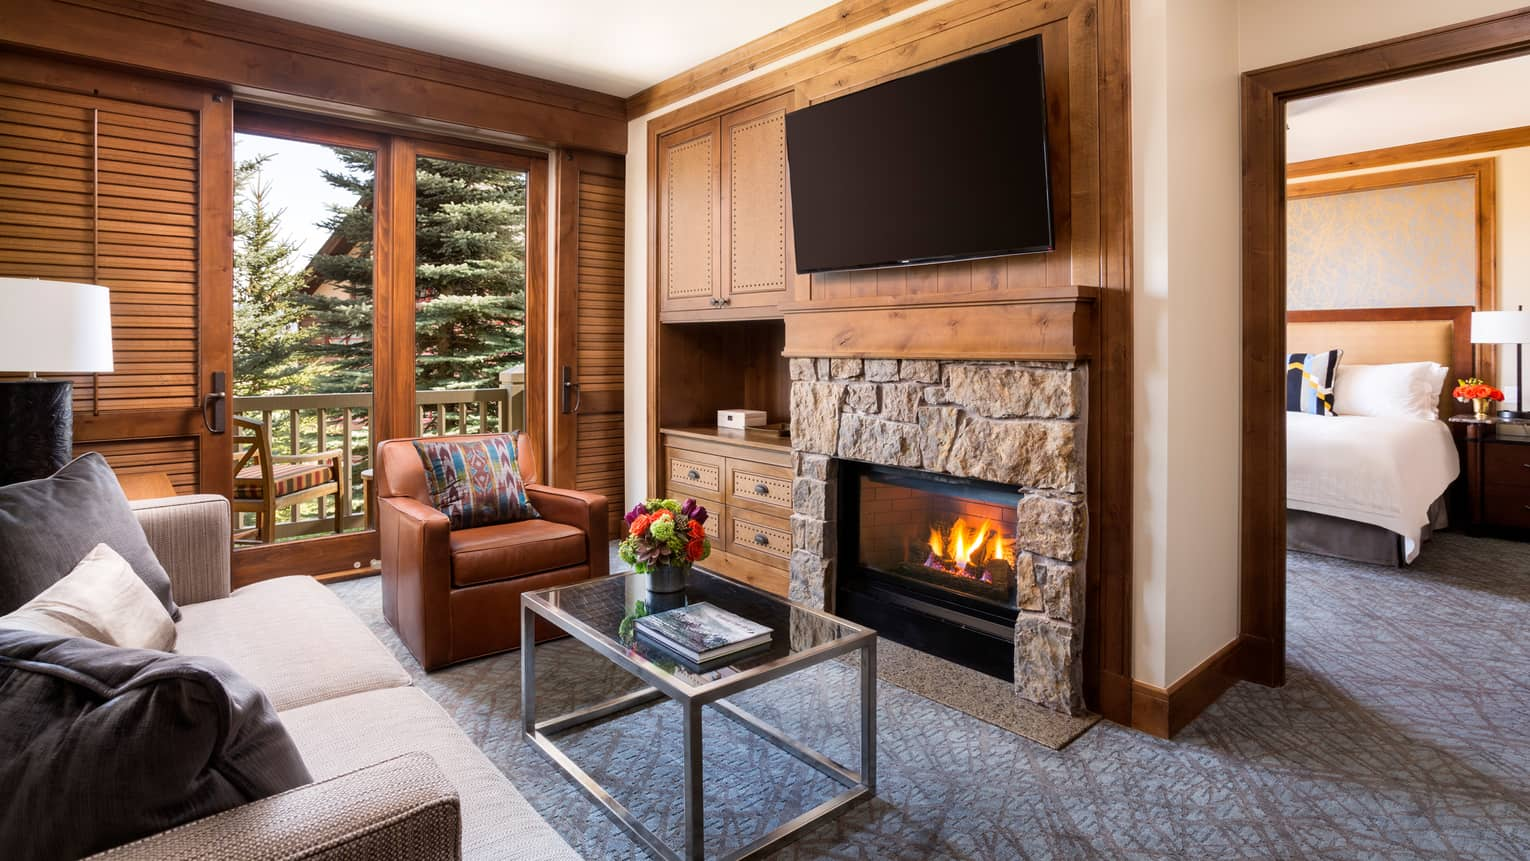 Stone gas fireplace under wood mantle, TV, leather armchair, glass coffee table